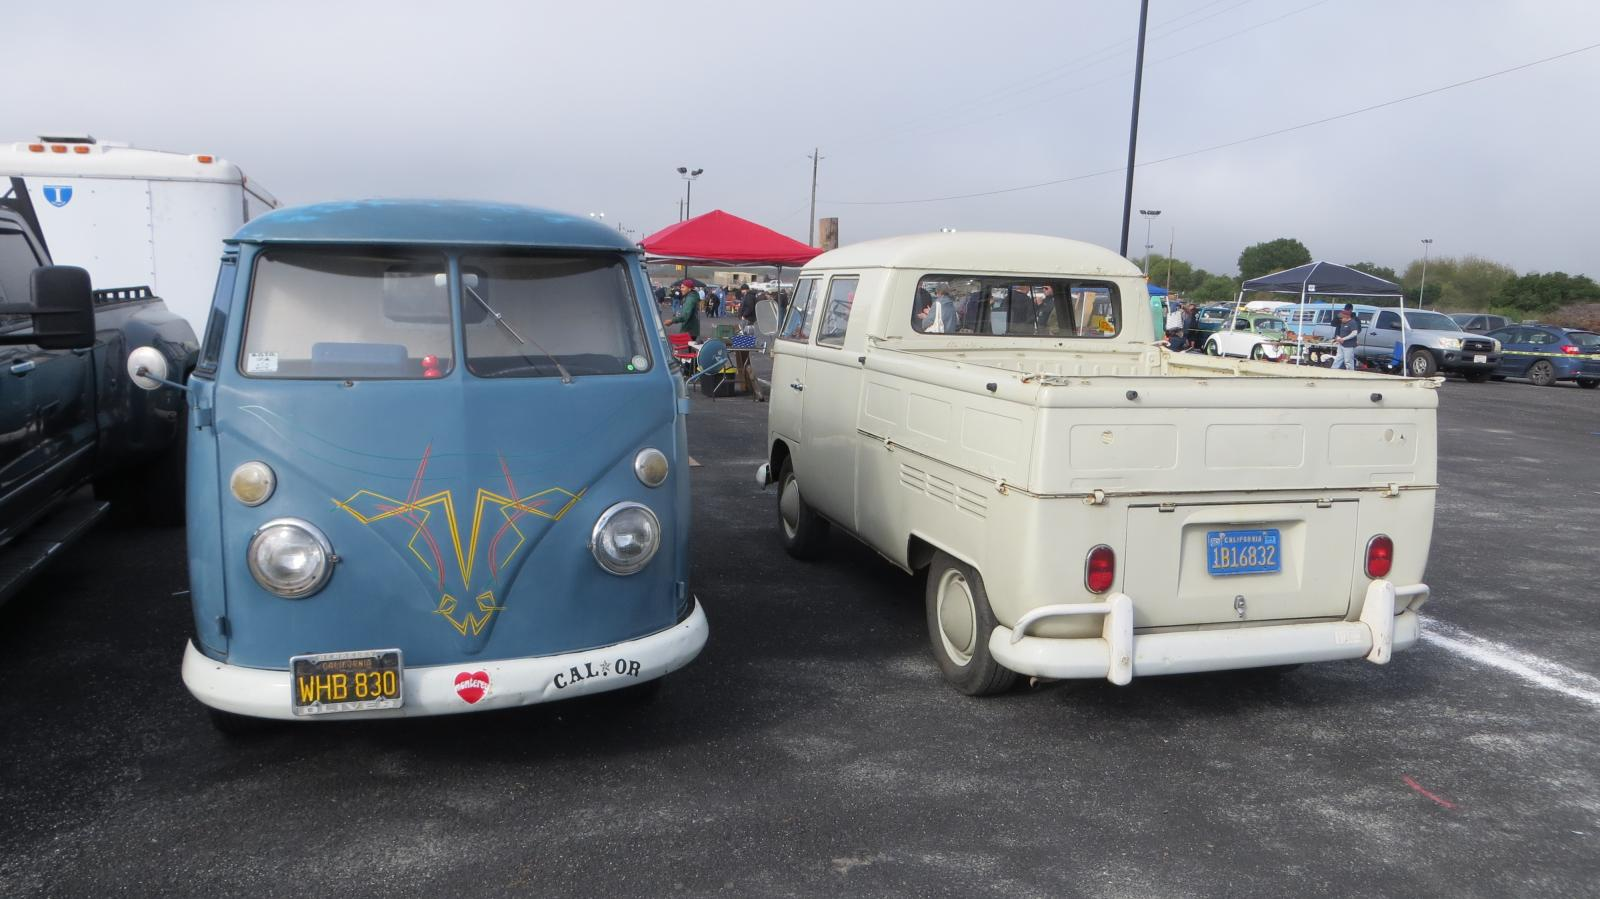 Some Double Cab Photos from Red Barn 2019 (Sat. April 13th, 2019)